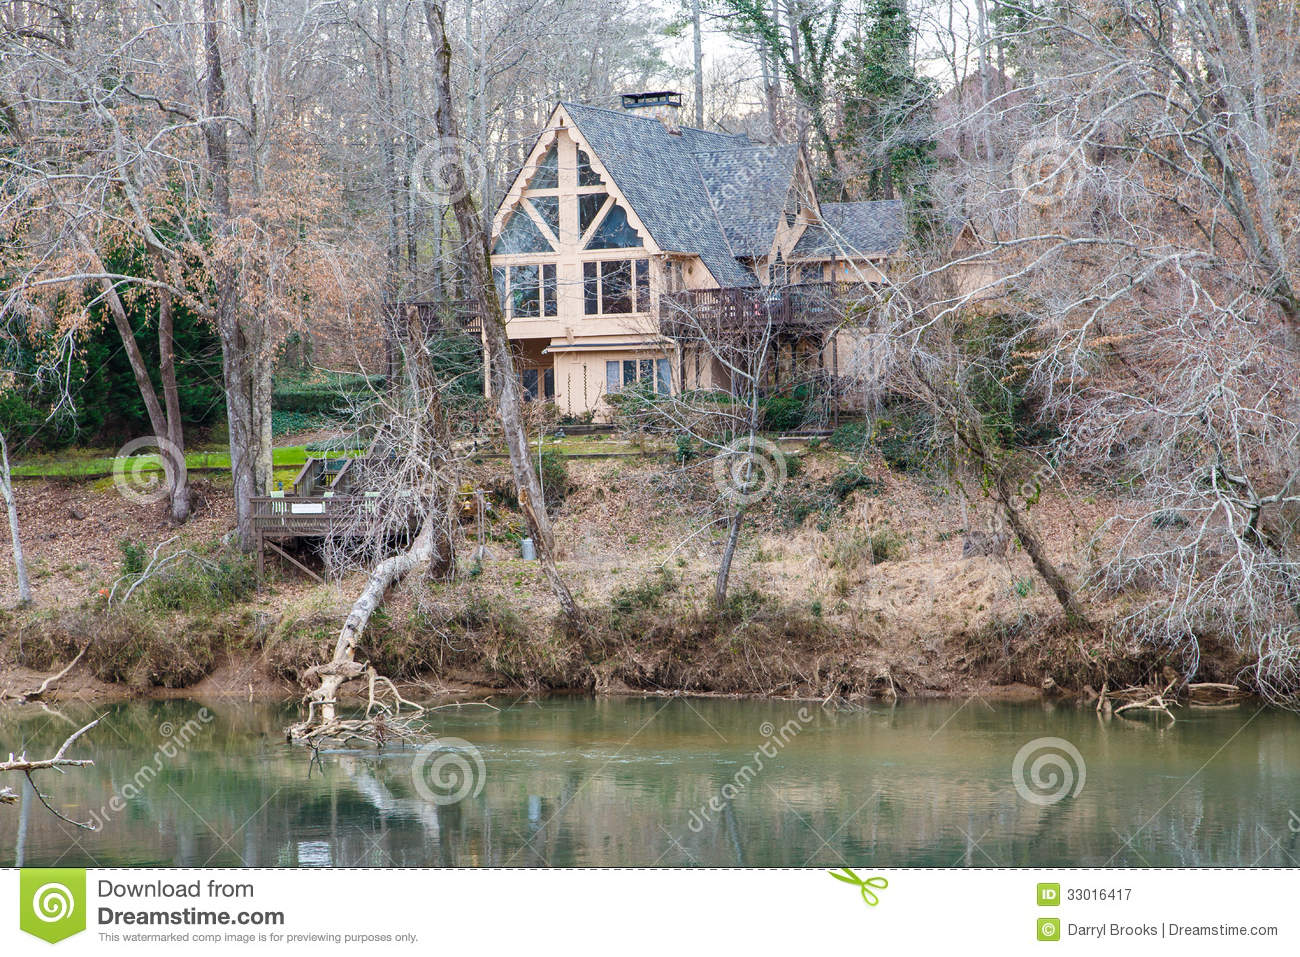 Nice A-frame house in Forest